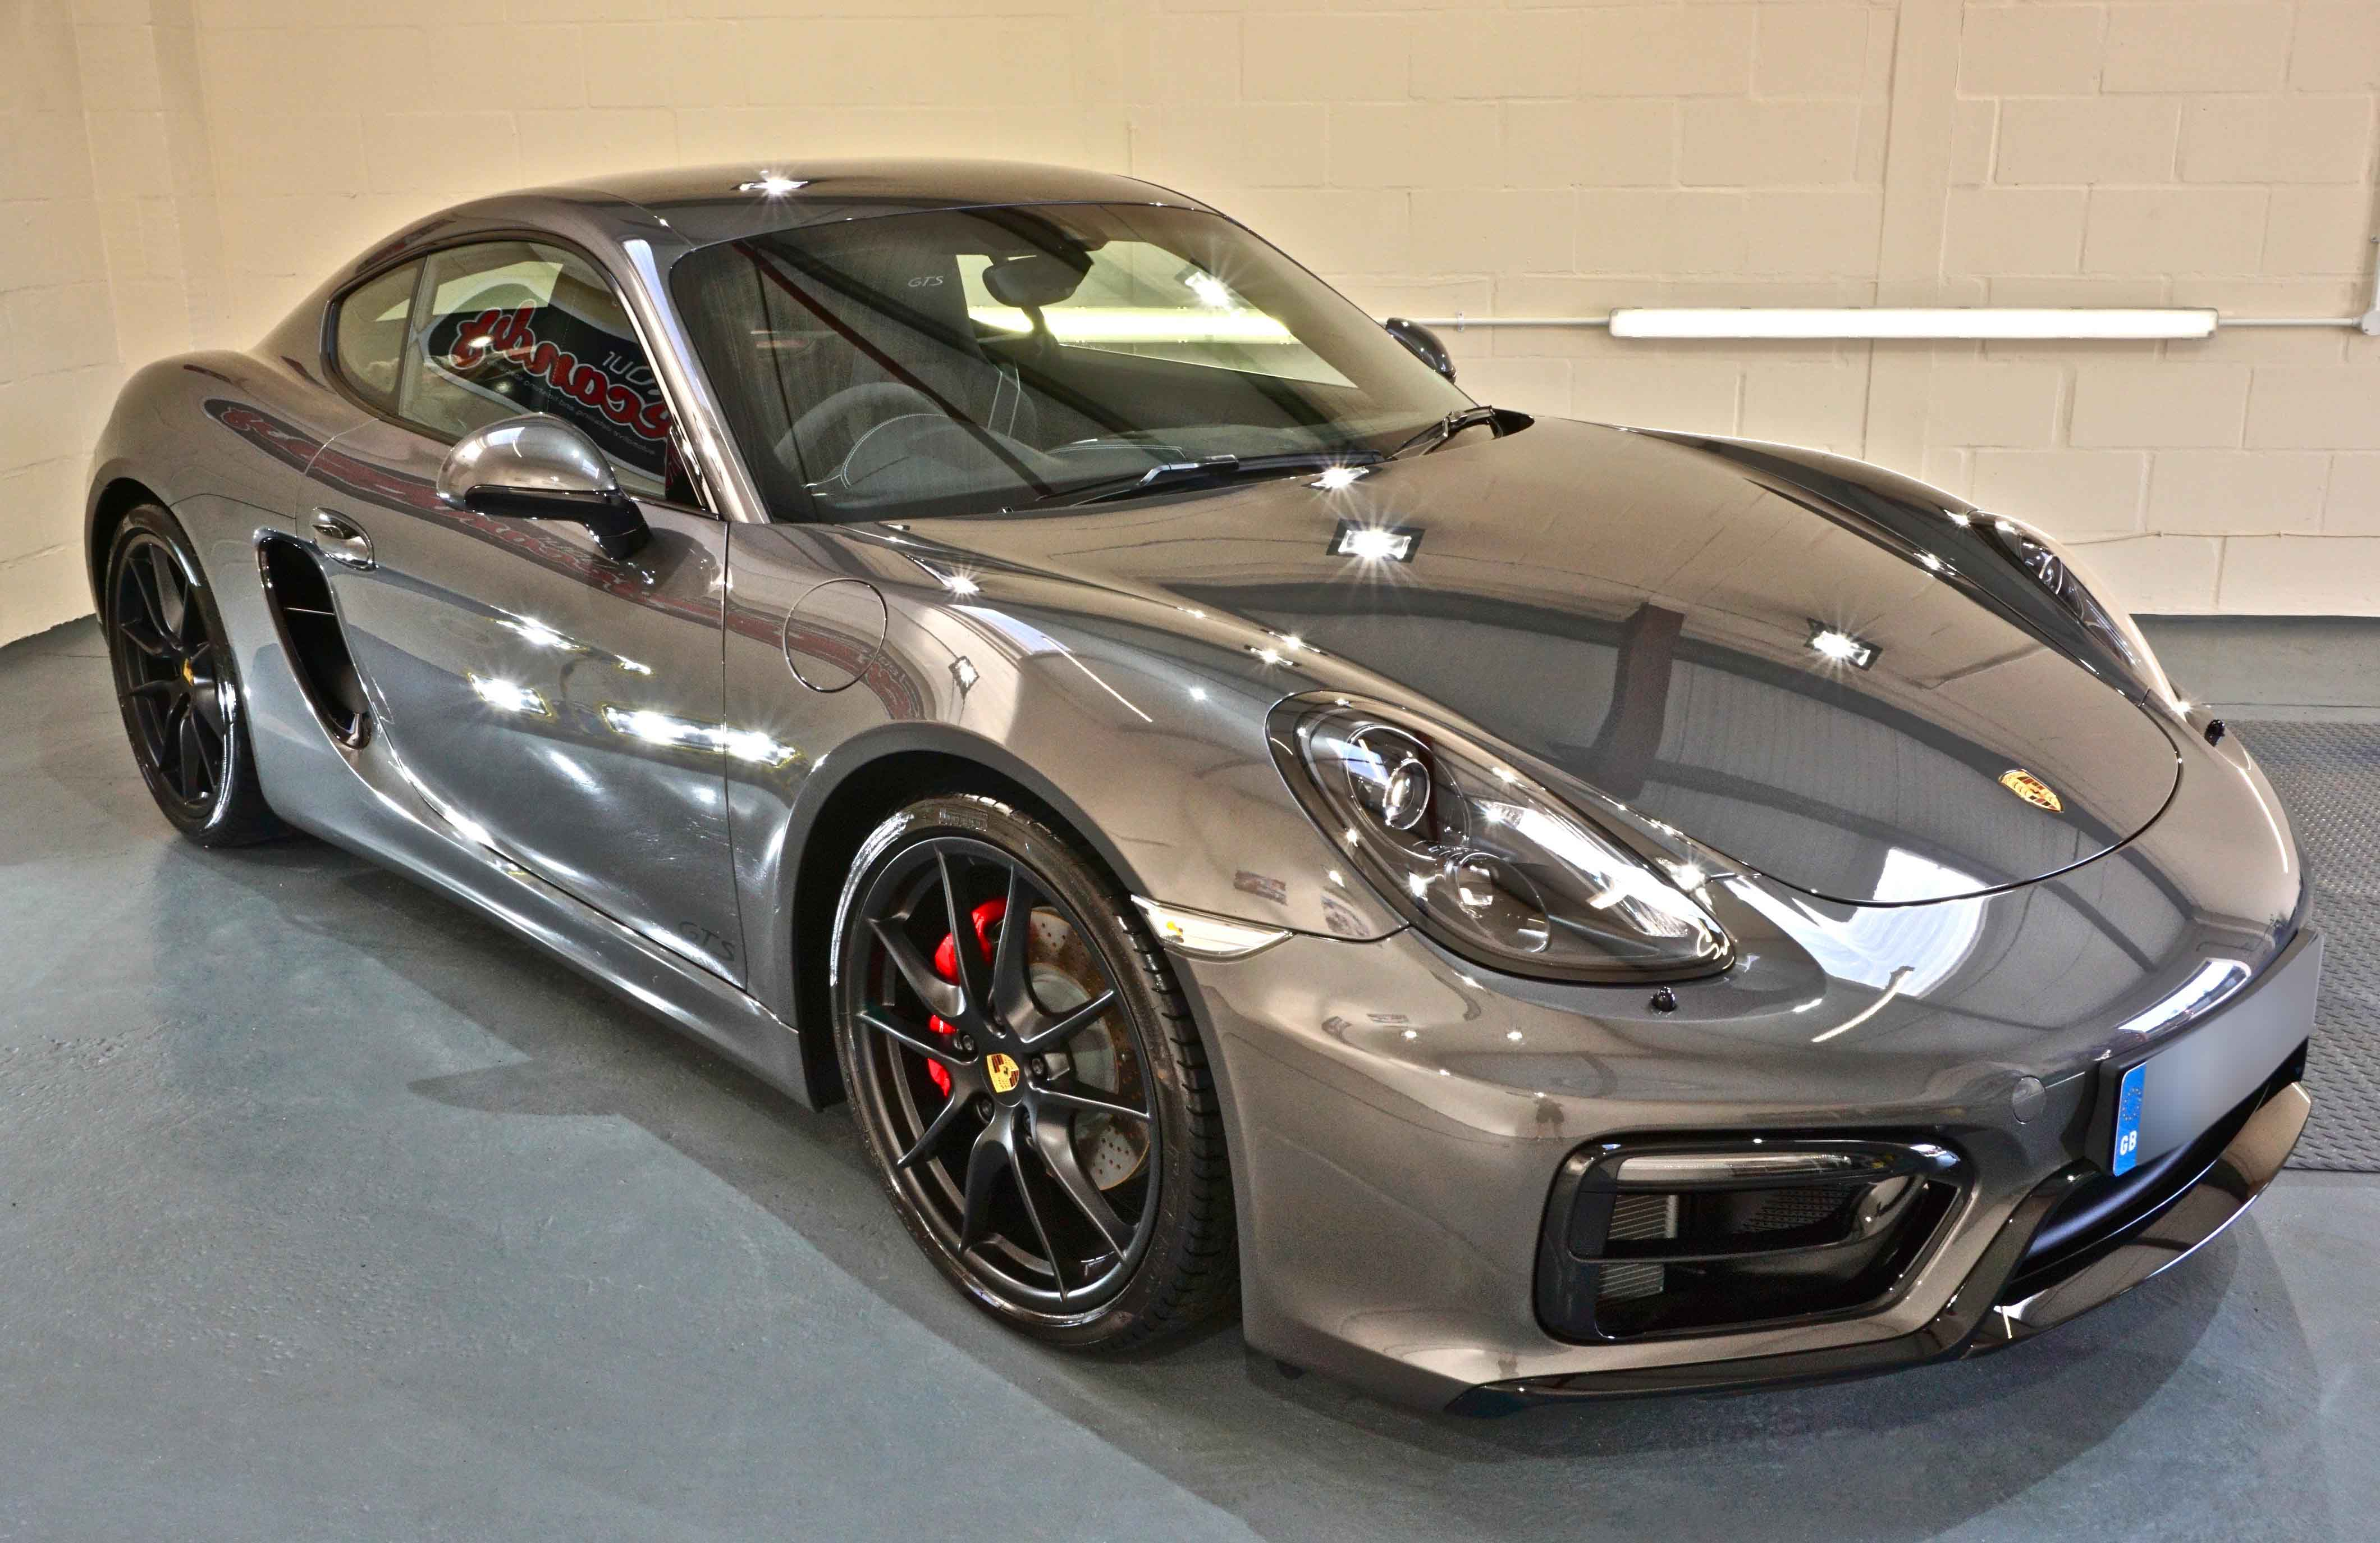 Porsche Cayman GTS New Car Enhancement and Protection Detail with XPEL Bronze Package PPF